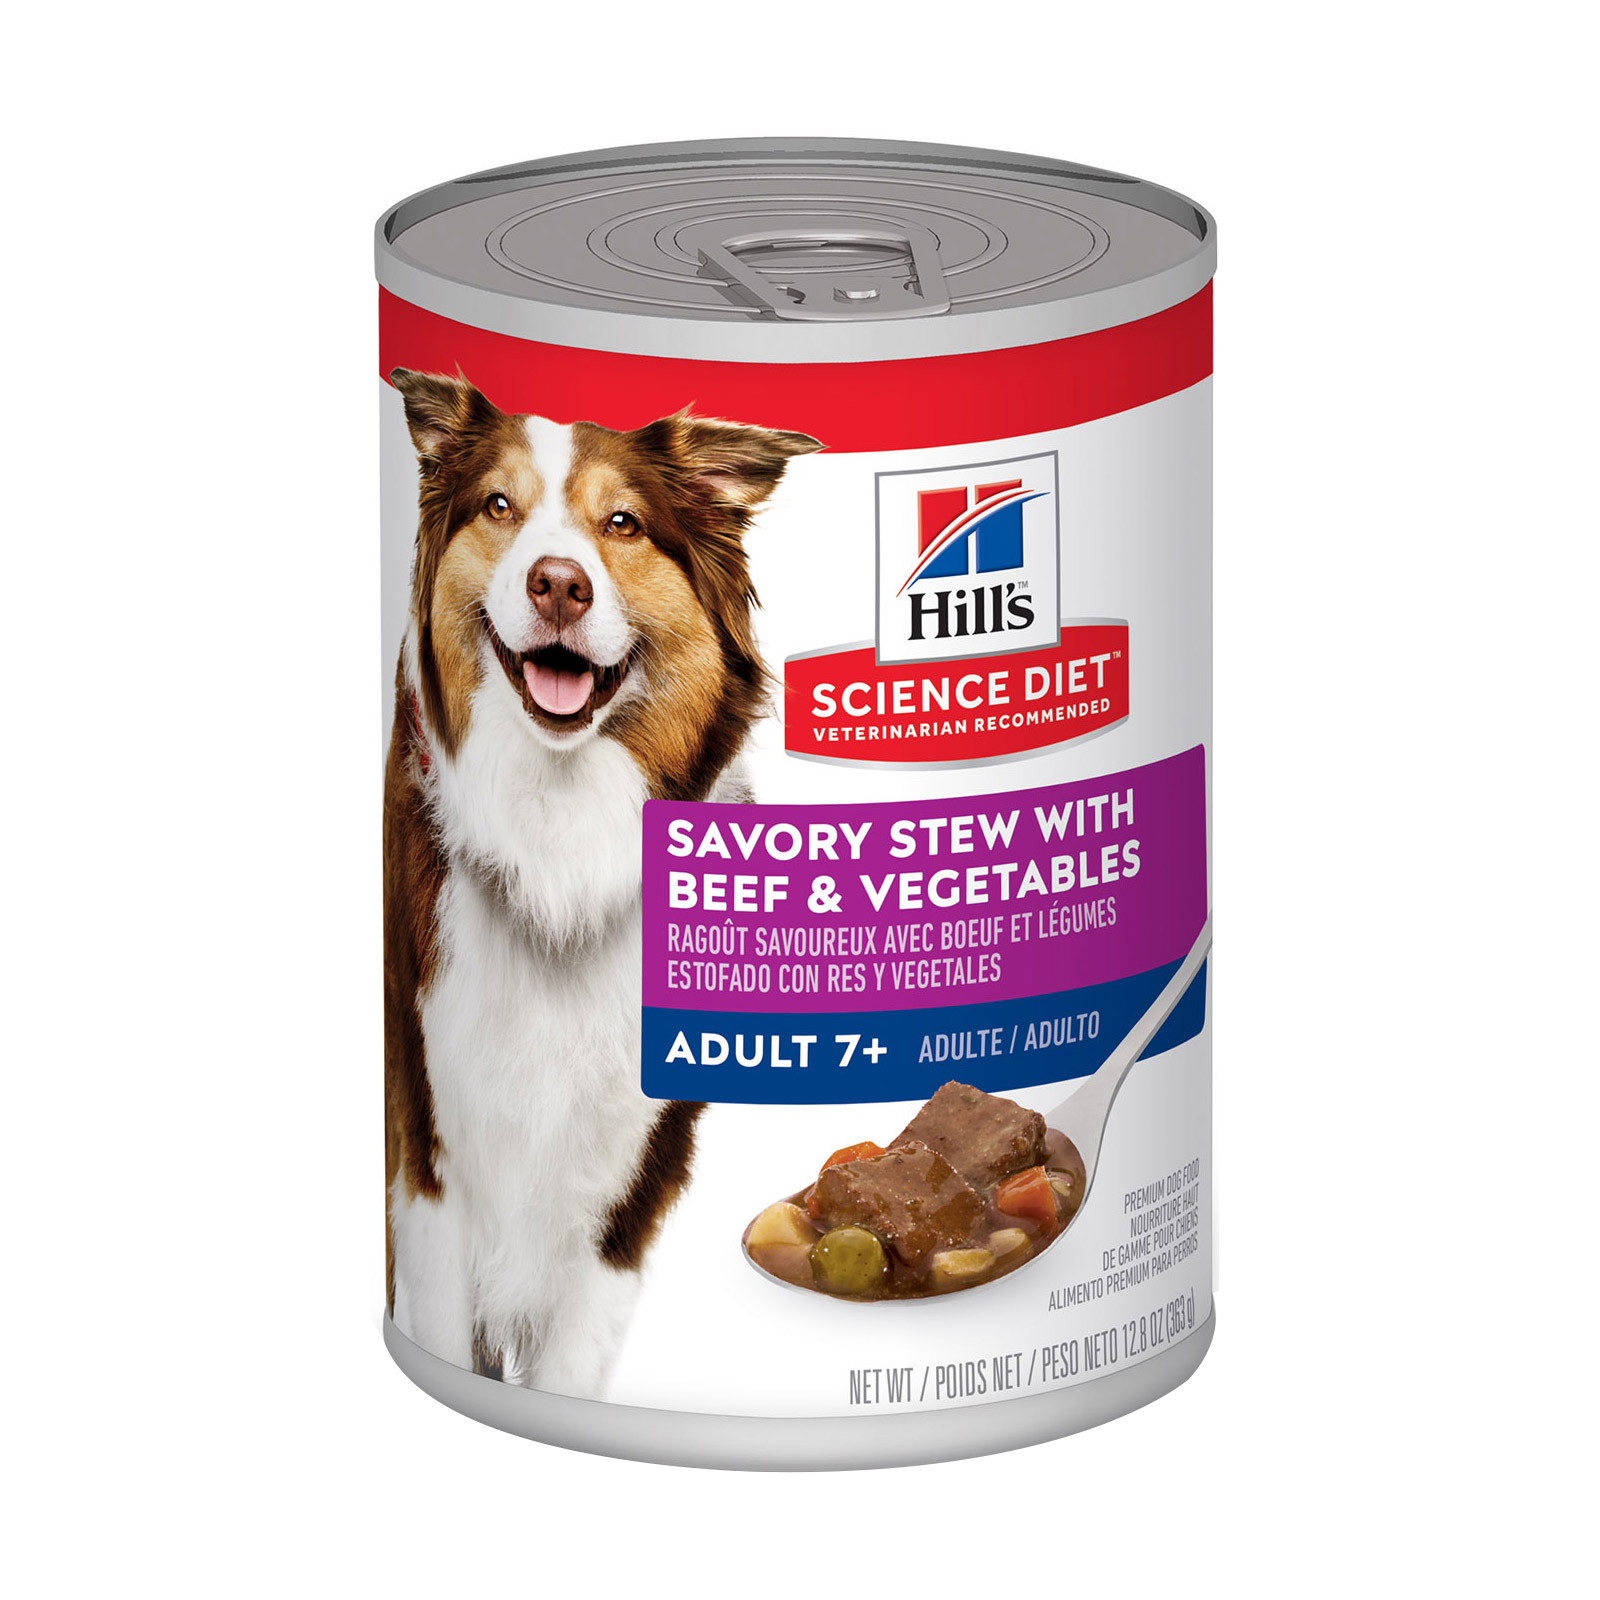 Hill's Science Diet Adult 7+ Savory Stew Beef & Vegetable Canned Dog Food